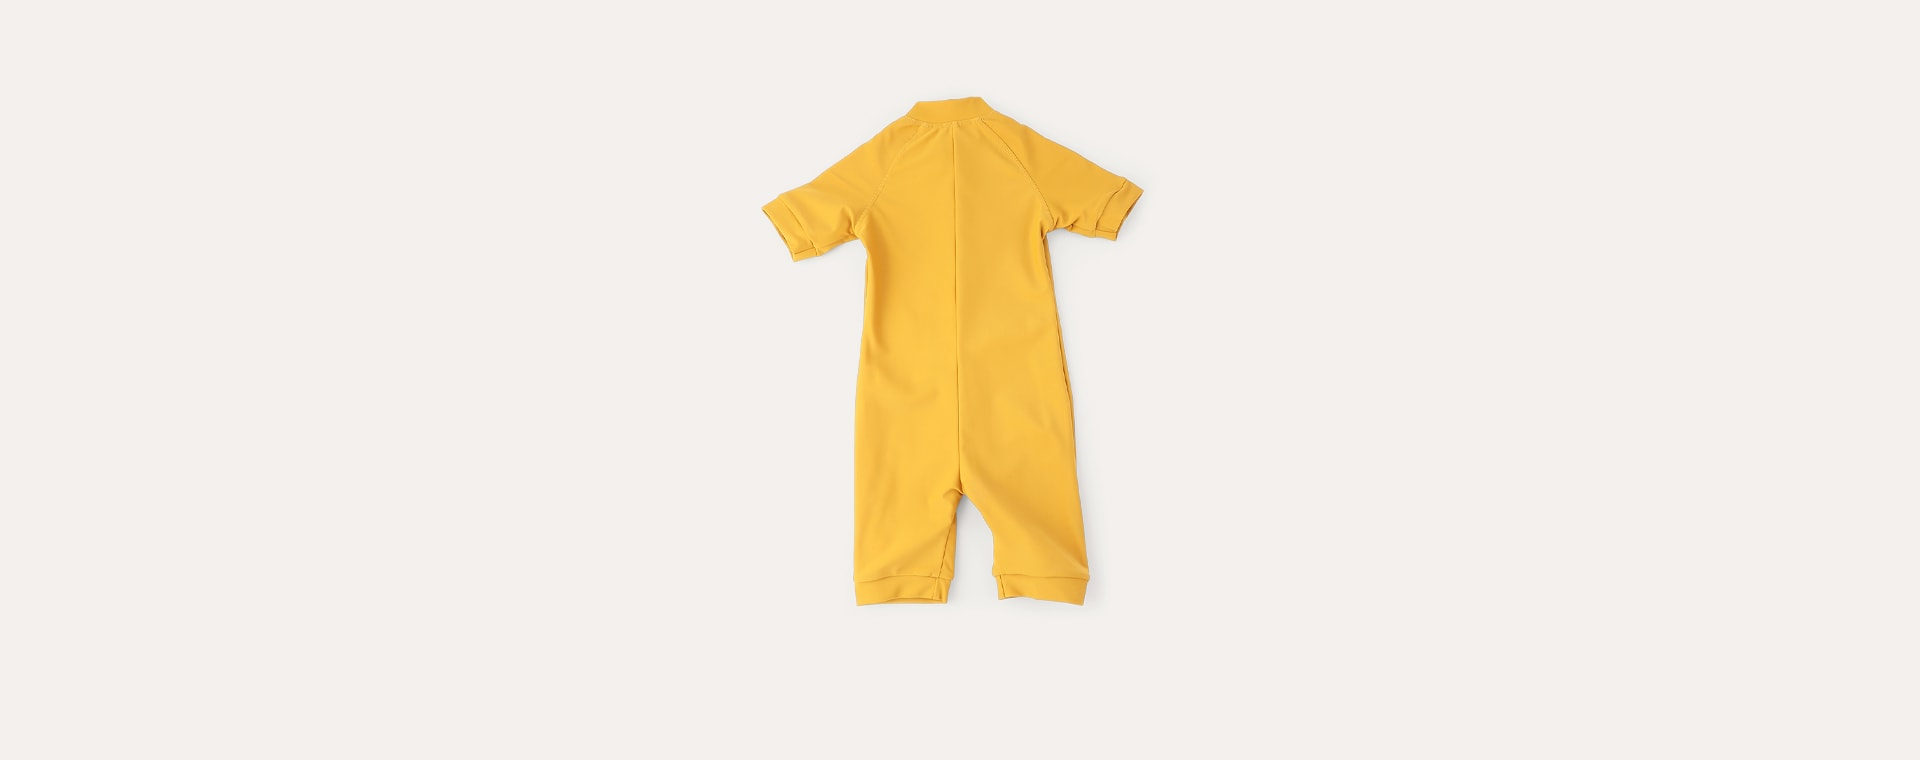 Ginger KIDLY Label Recycled Sun Suit